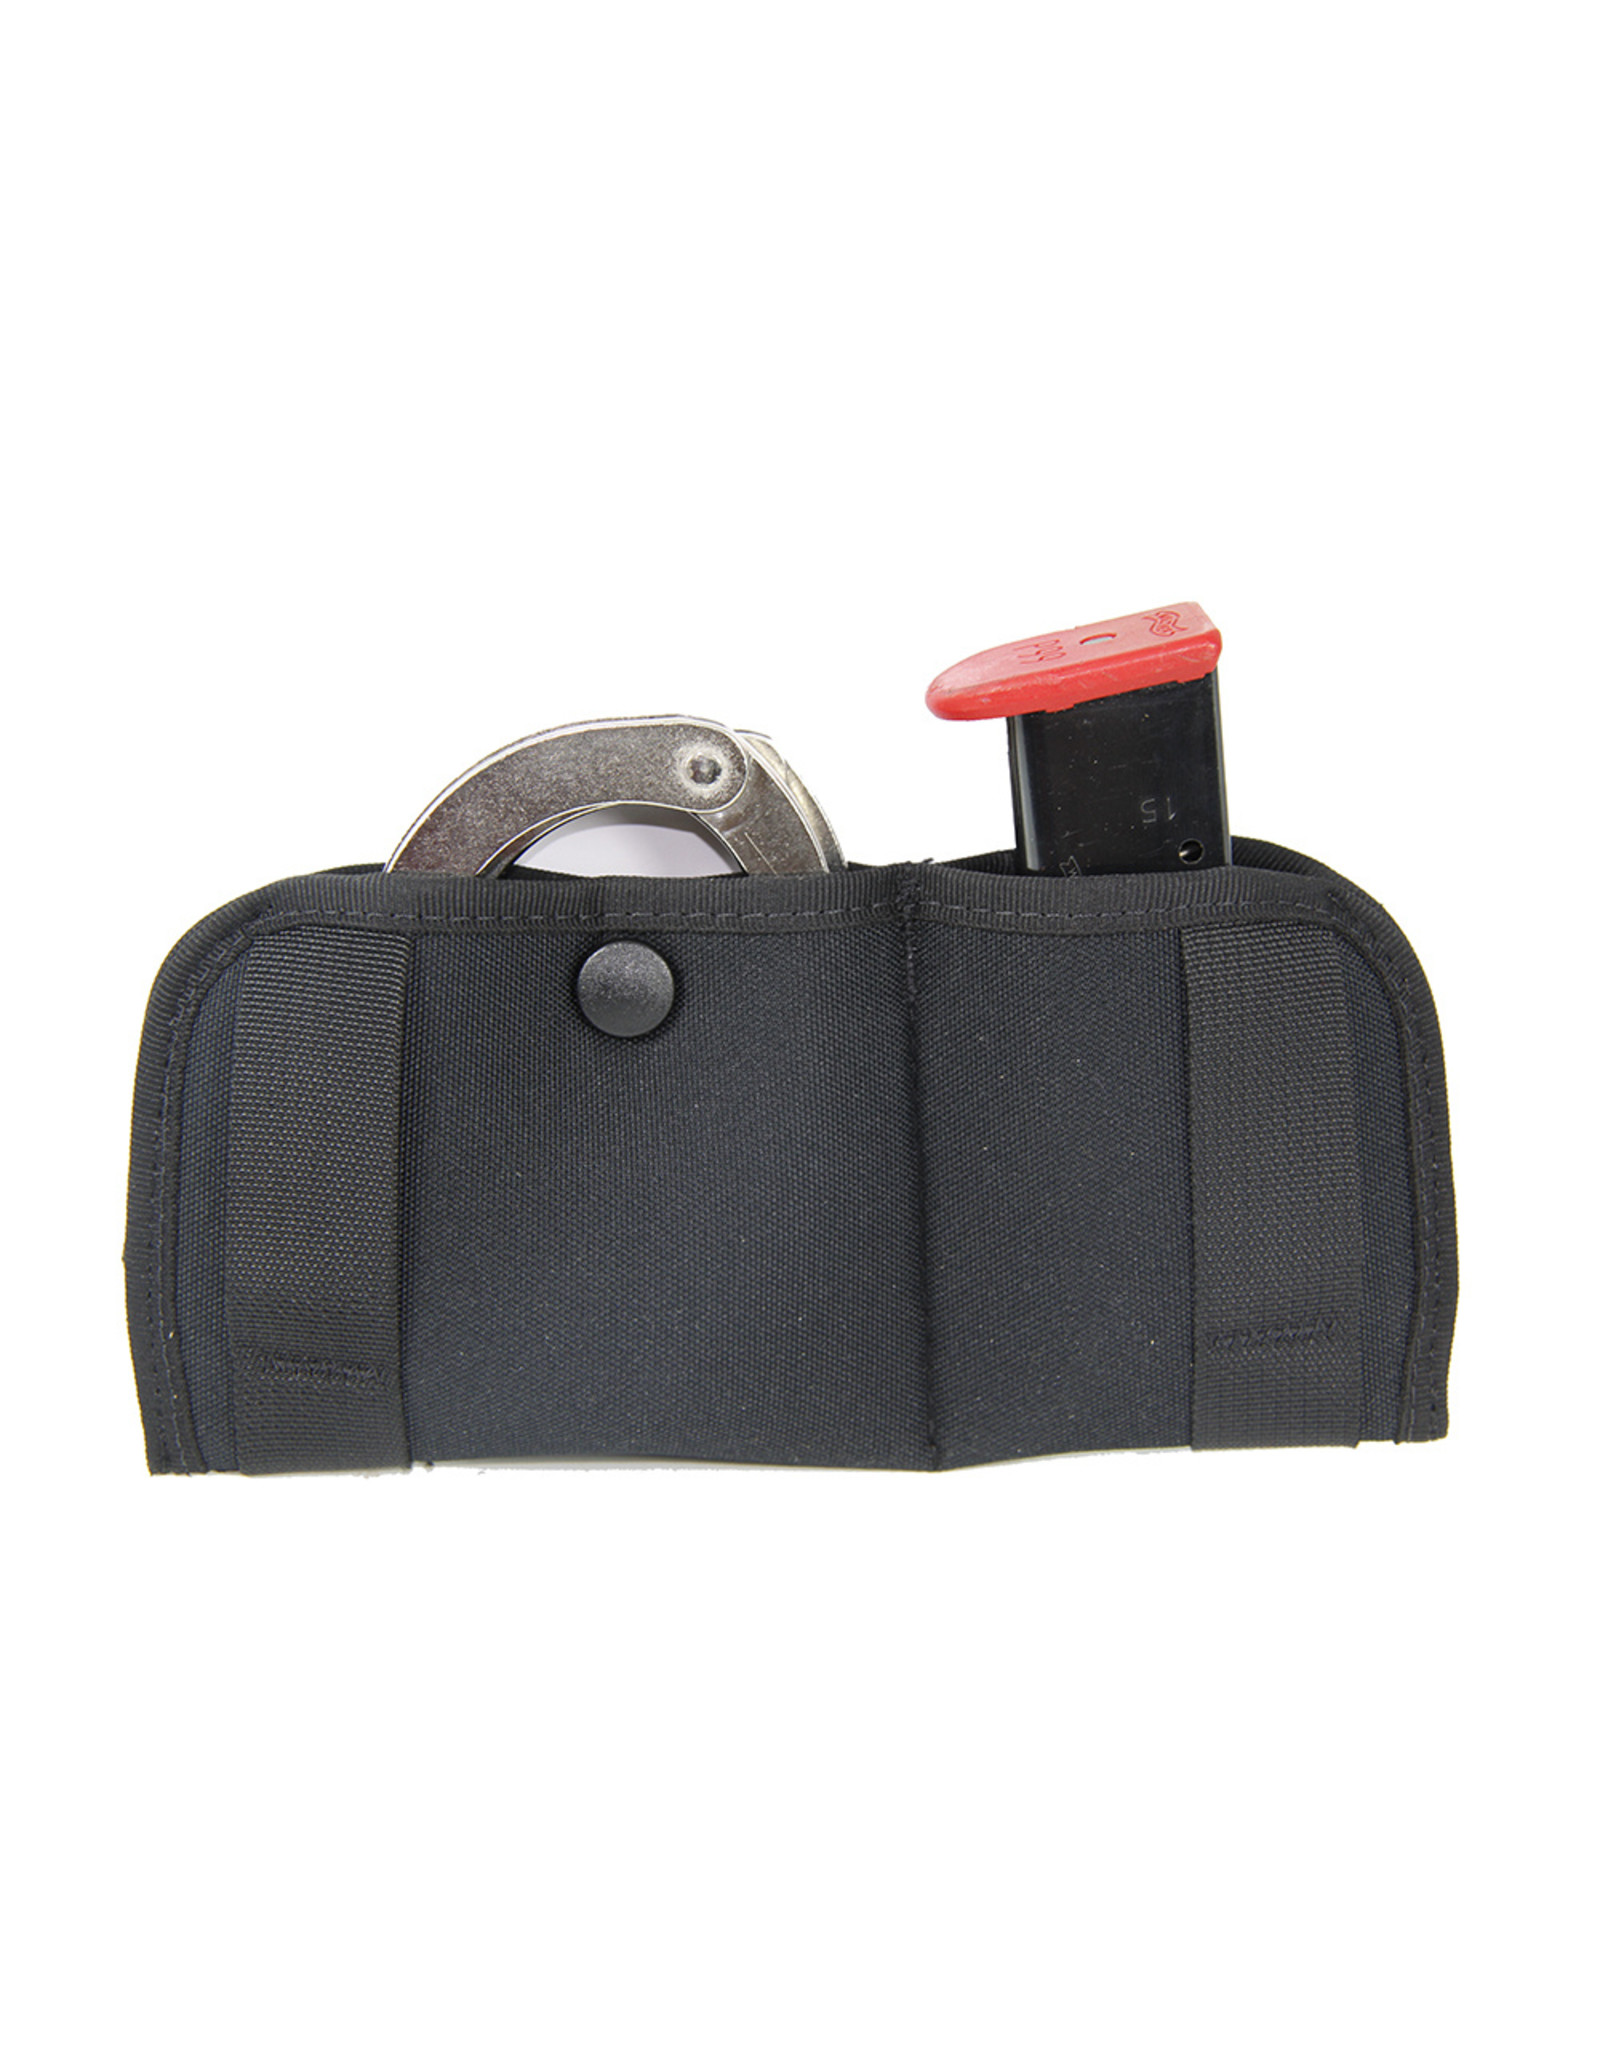 HI-TEC INTERVENTION HANDCUFF CASE, NO FLAP WITH SINGLE MAG HOLDER - HT534-1